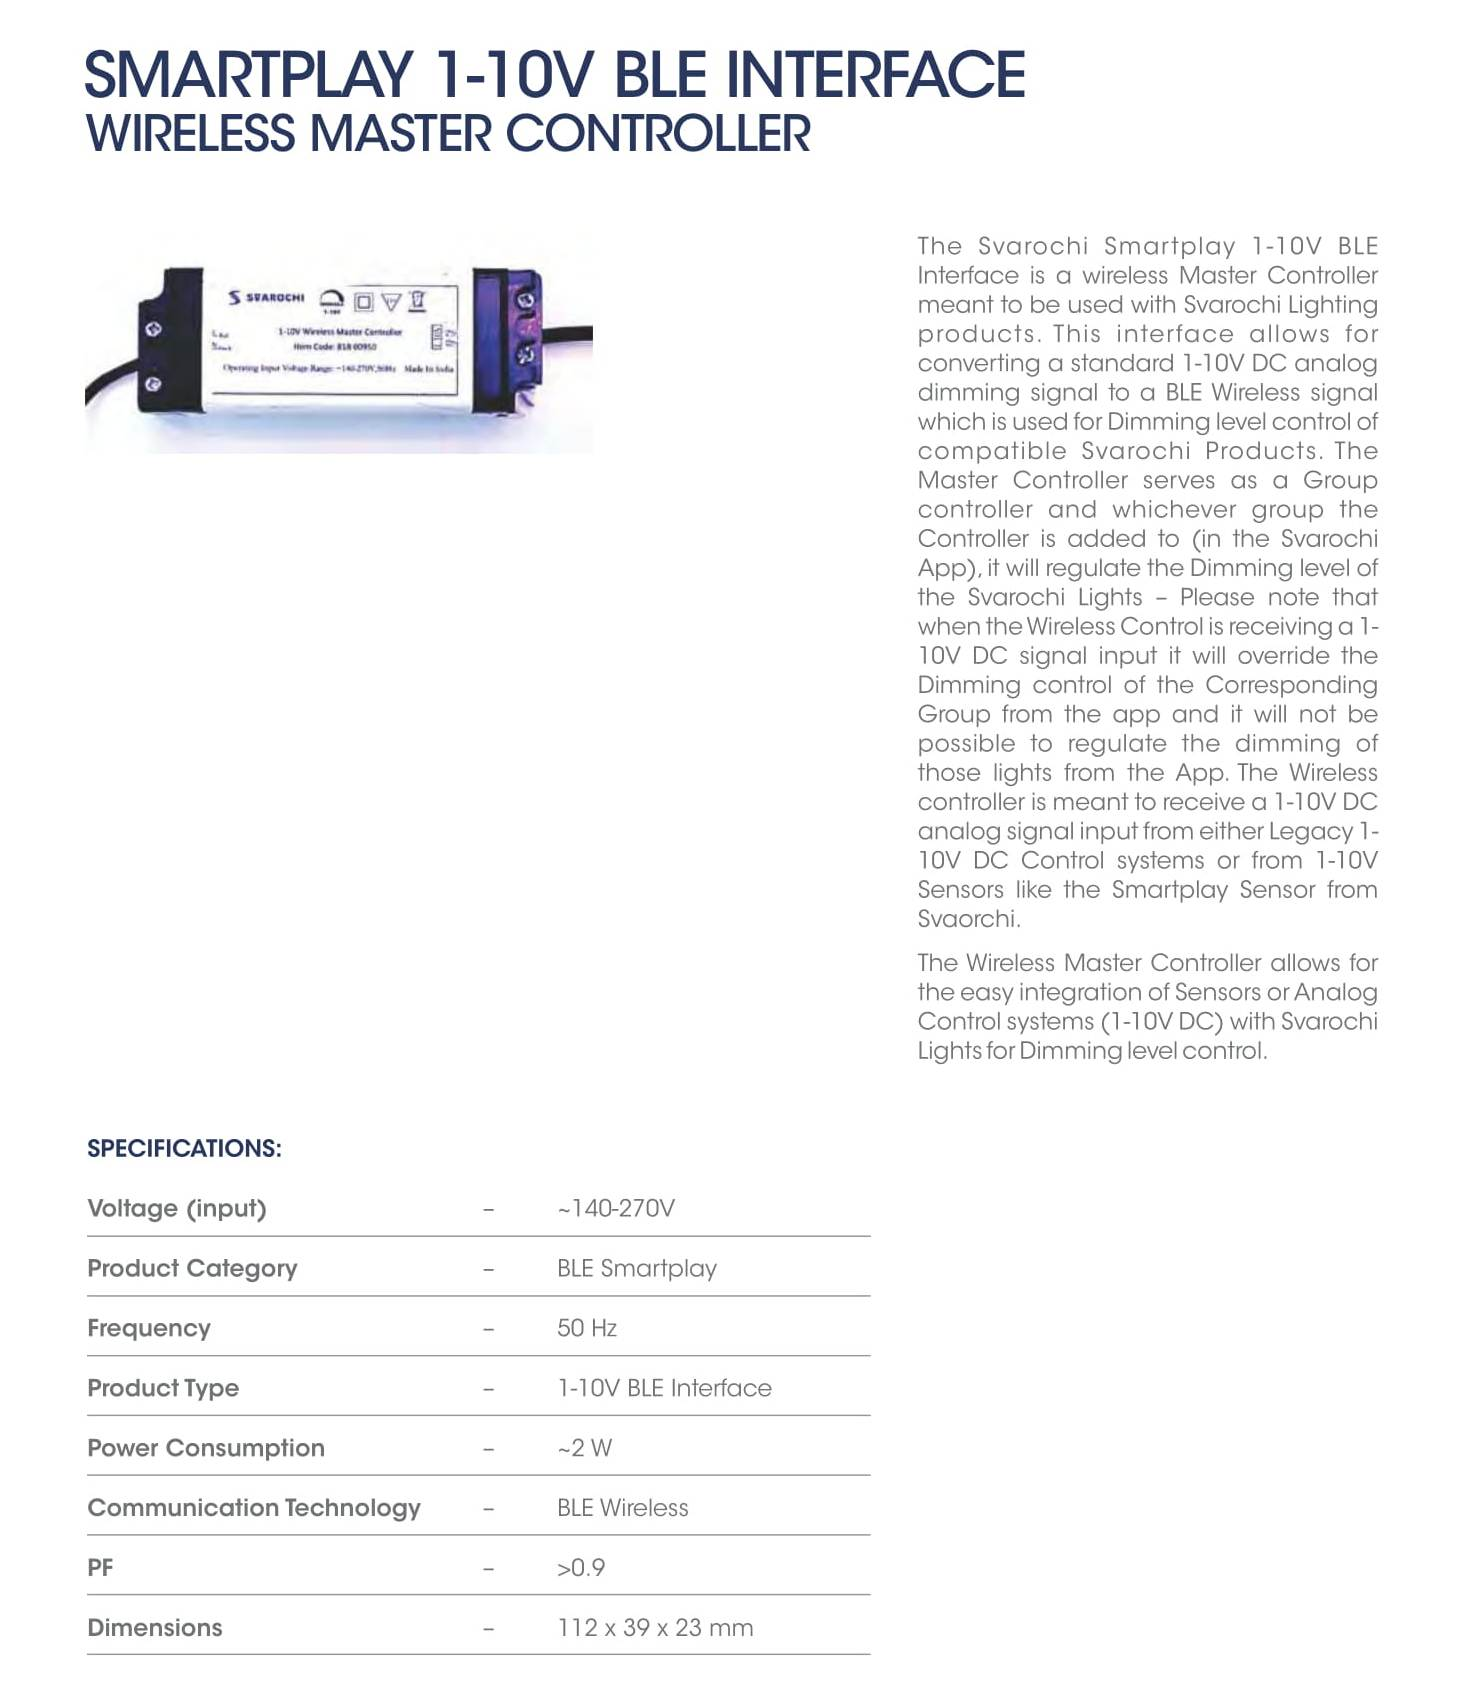 Smartplay 1-10V BLE Interface Wireless Master Controller